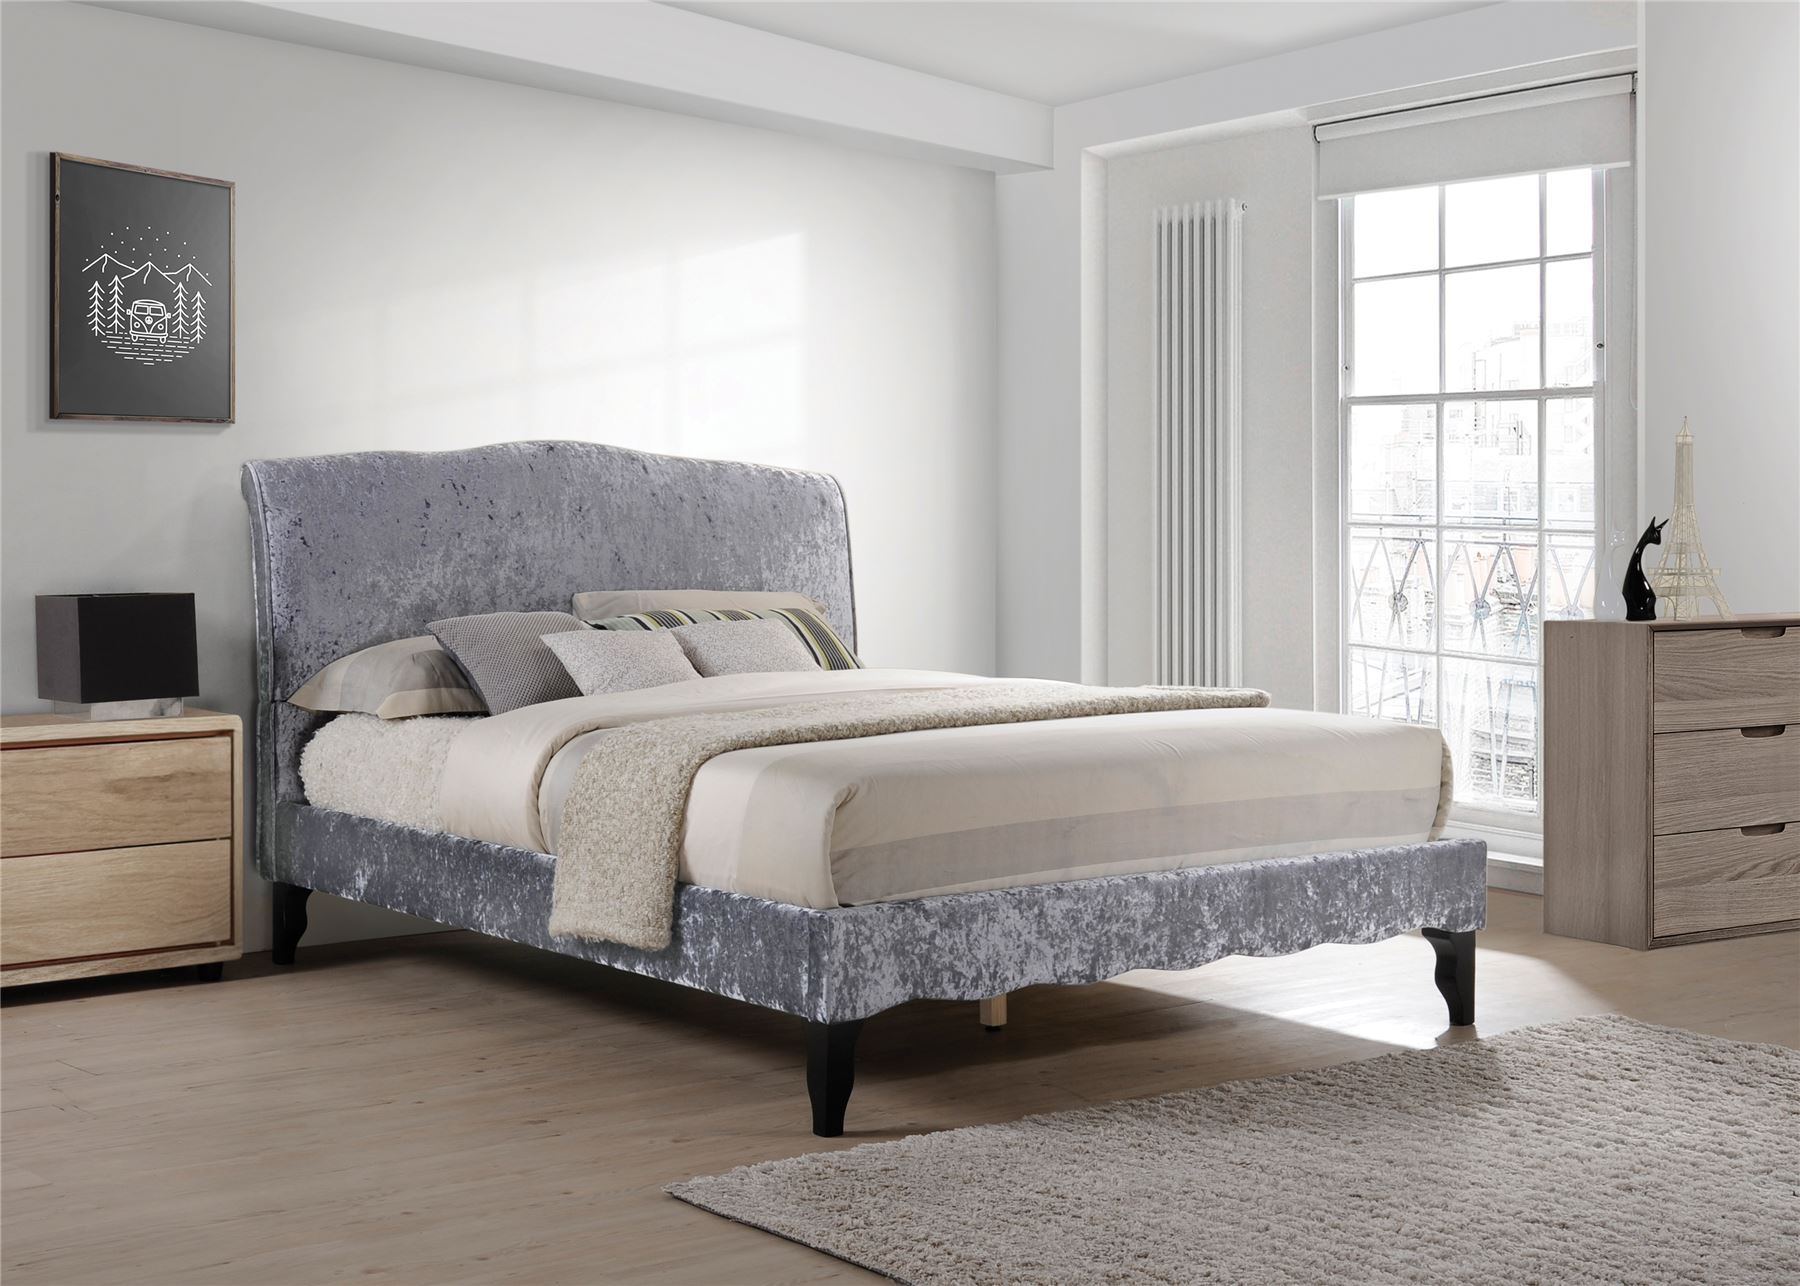 Carlo French Provence King Size Bed Frame 5Ft 150cm Dark Grey ...